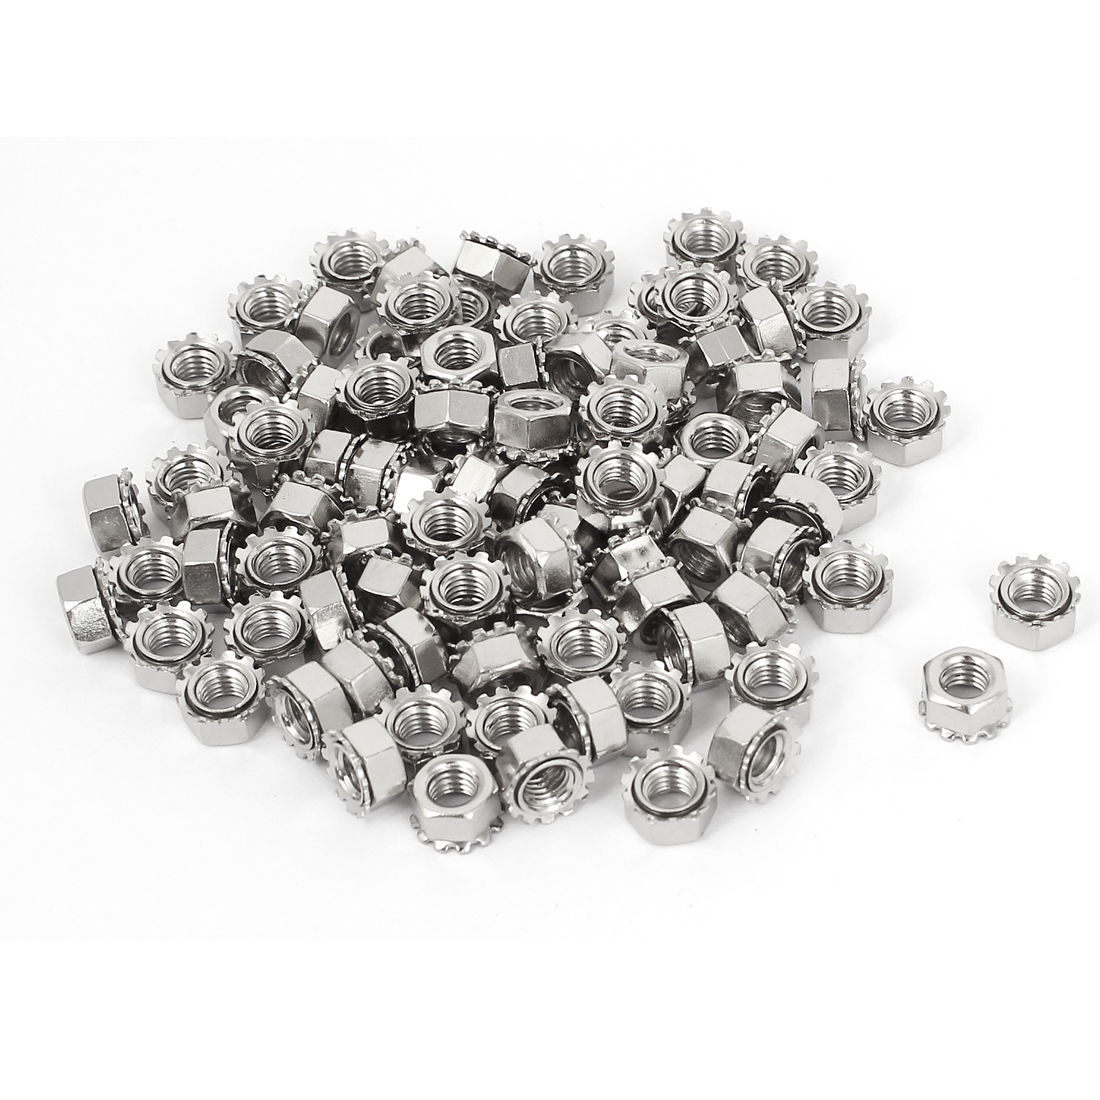 5mm Thread Dia Nickel Plated External Tooth K Lock Kep Nut Silver Tone 100Pcs